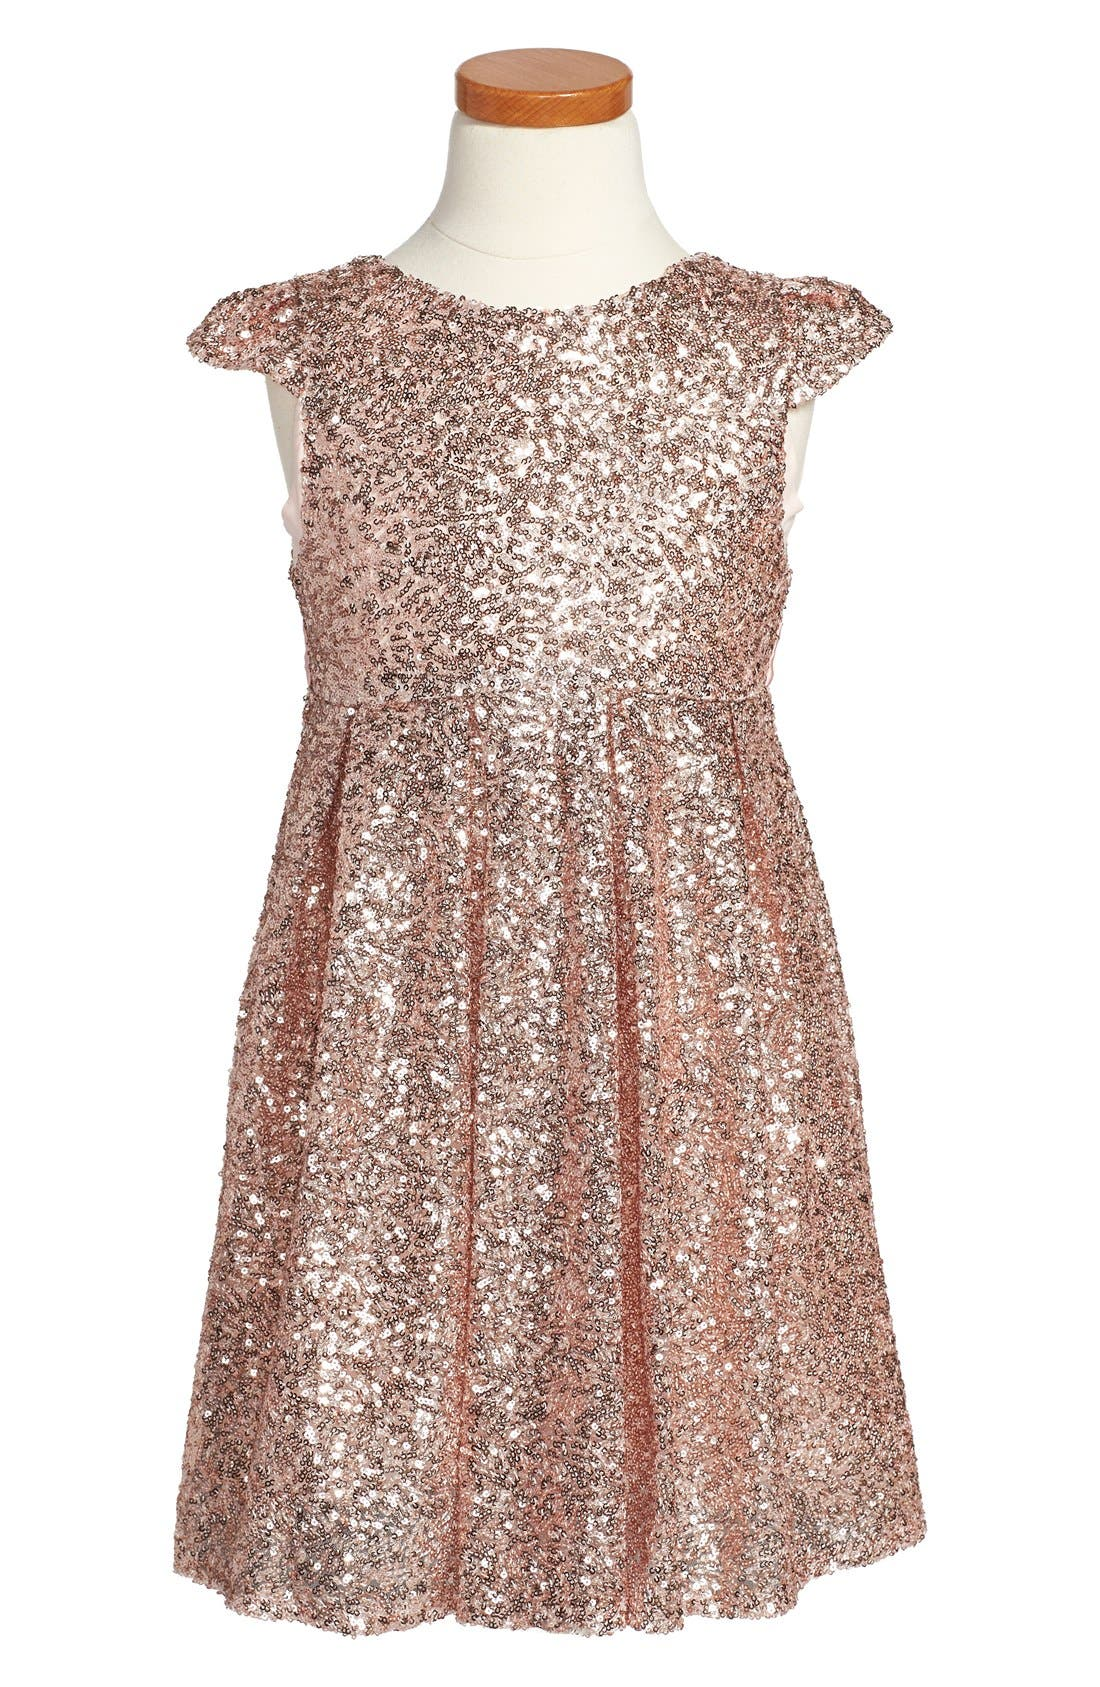 Alternate Image 1 Selected - ilovegorgeous 'Moon Festival' Sequin Dress (Toddler Girls & Little Girls)